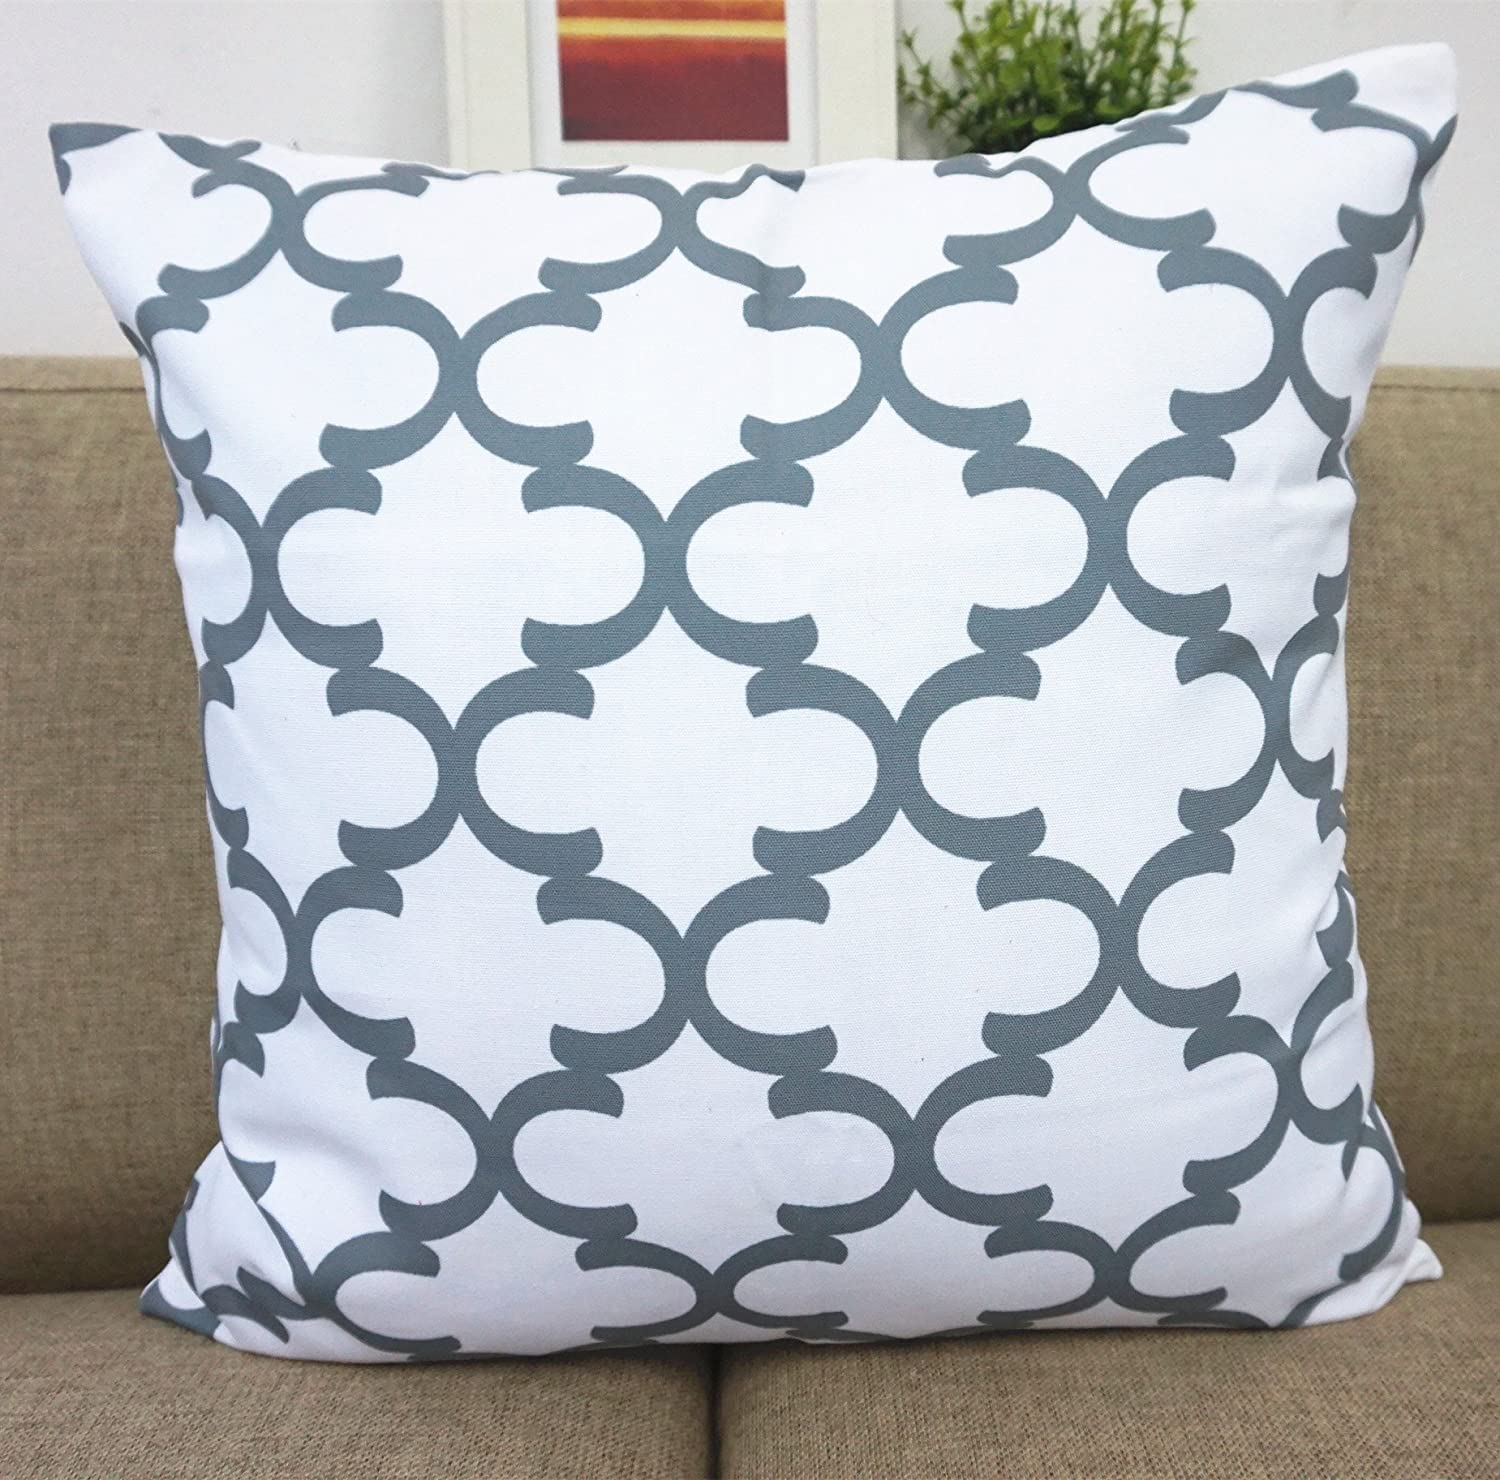 amazoncom howarmer canvas cotton cushion cover geometric  - amazoncom howarmer canvas cotton cushion cover geometric pattern  xinch set of  home  kitchen